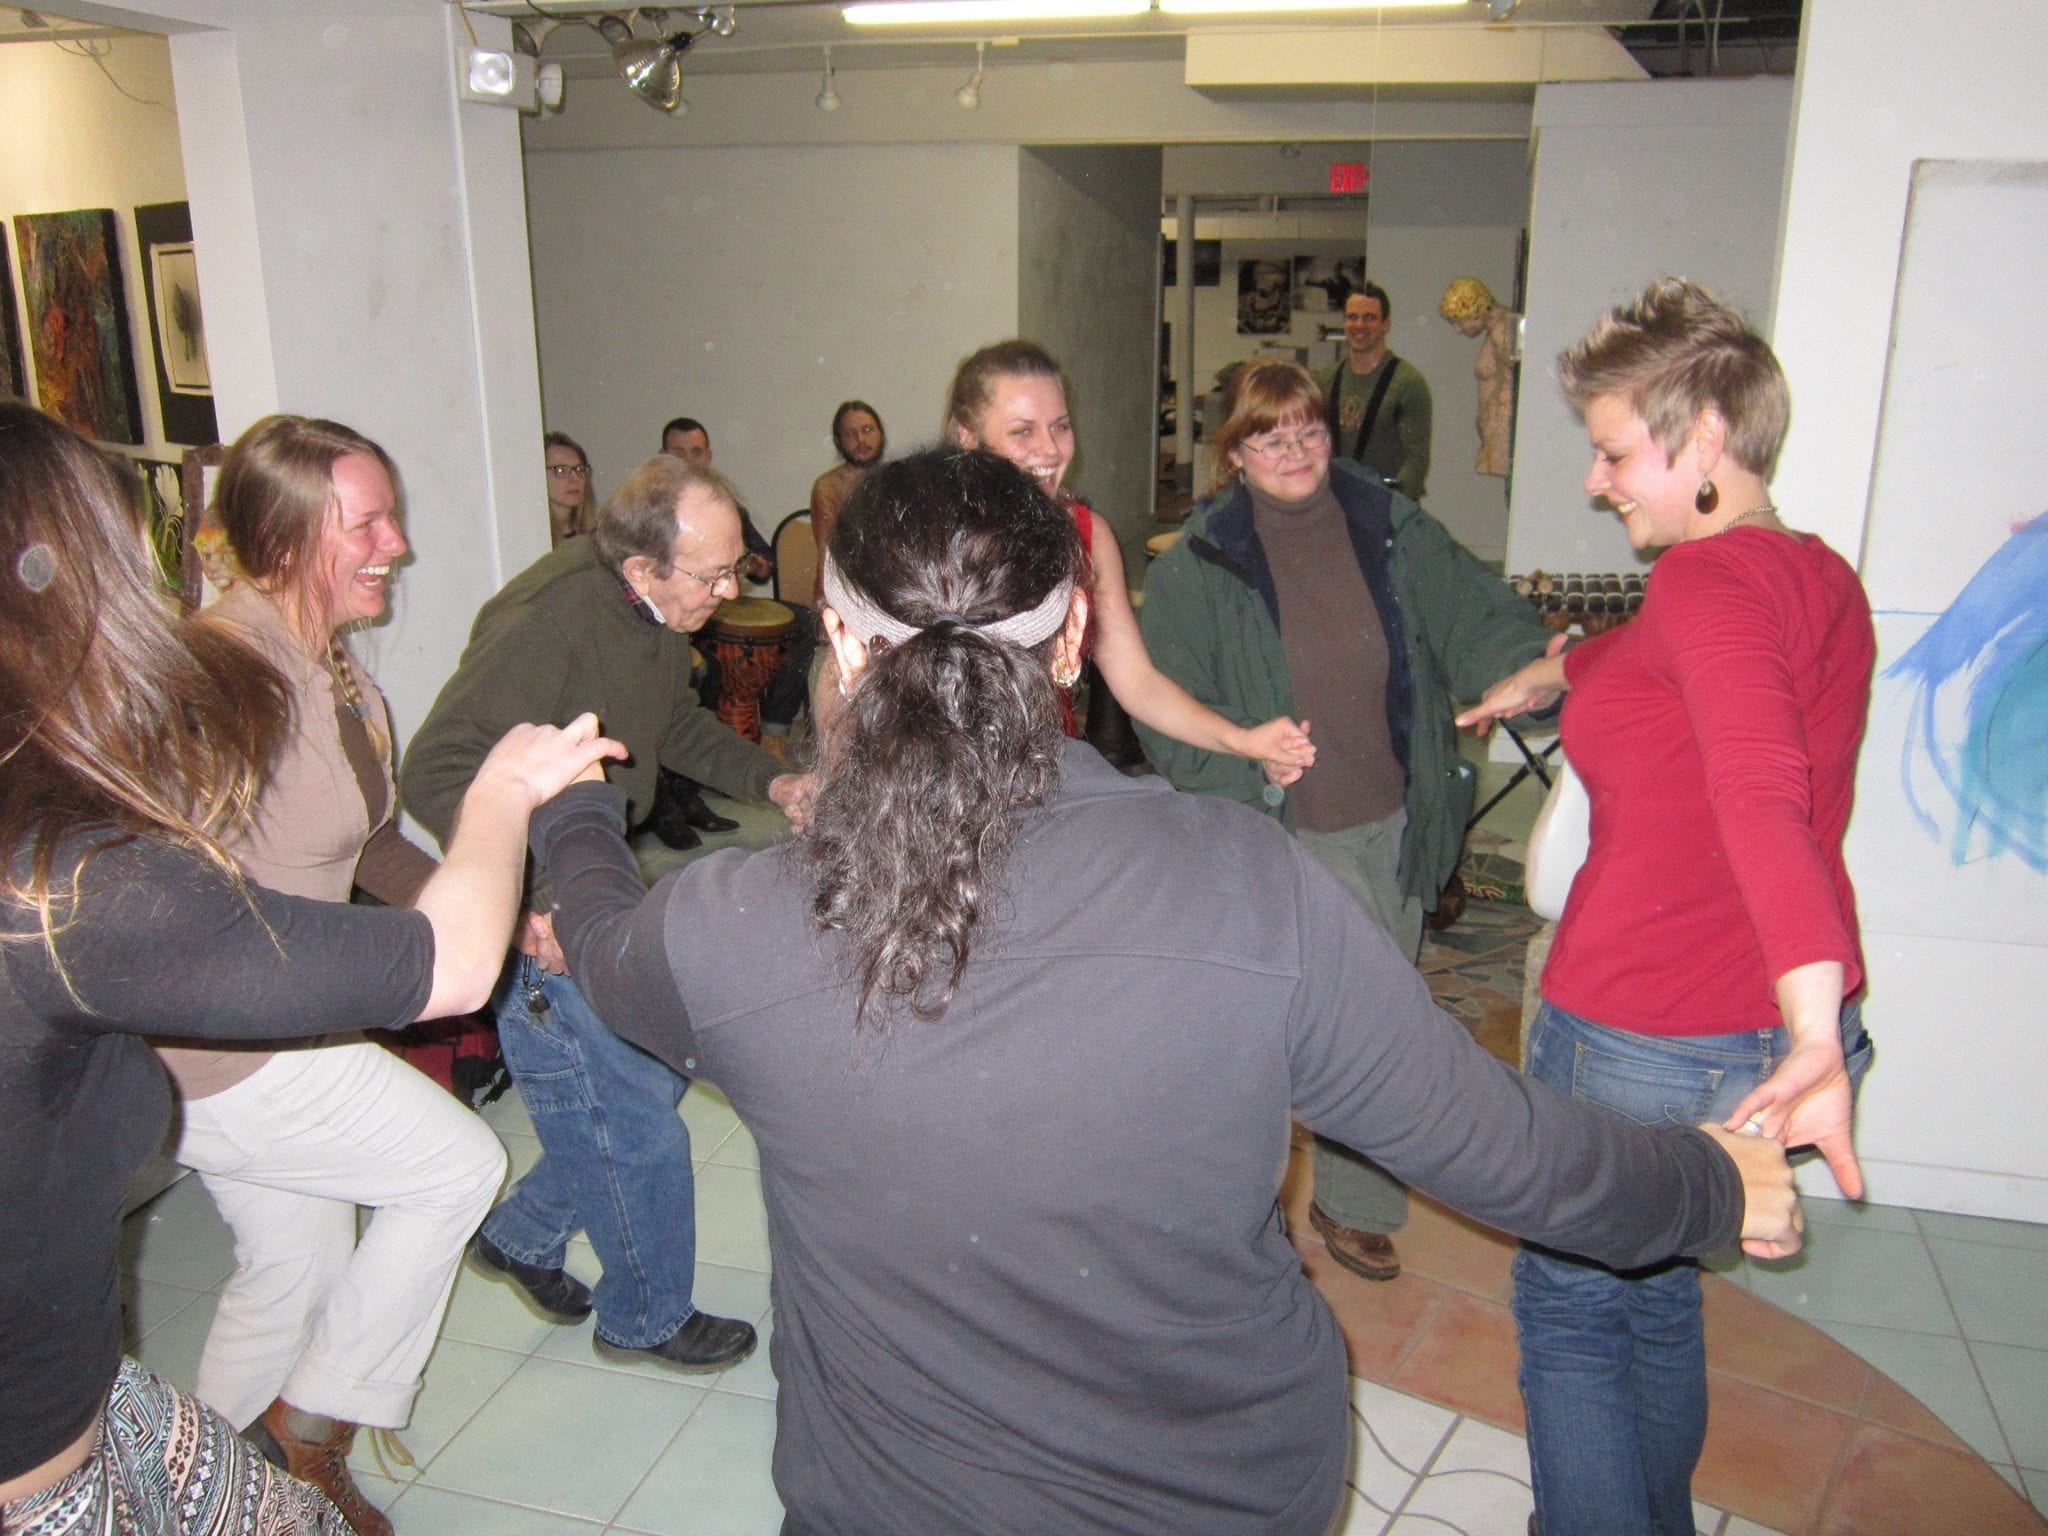 Otto dancing with friends at Creative Spirit